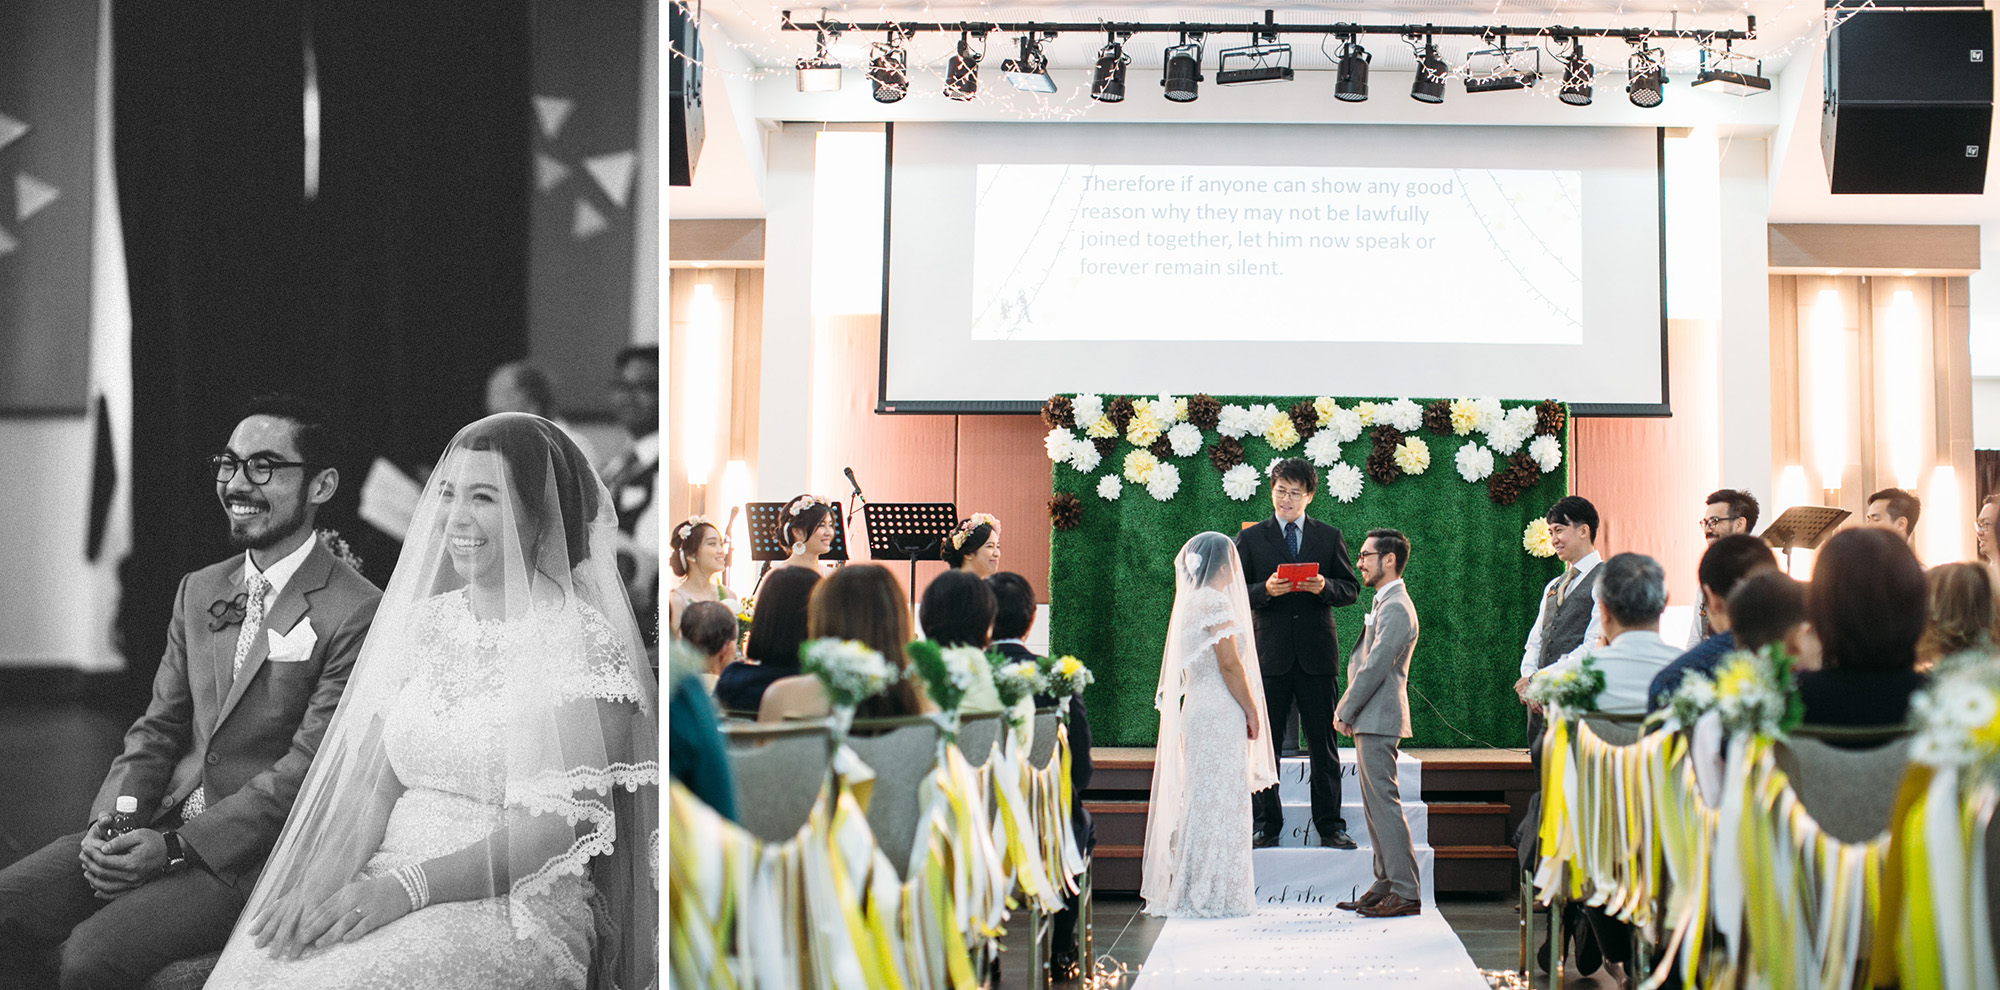 51-hellojanelee-sam grace-malaysia-wedding-day